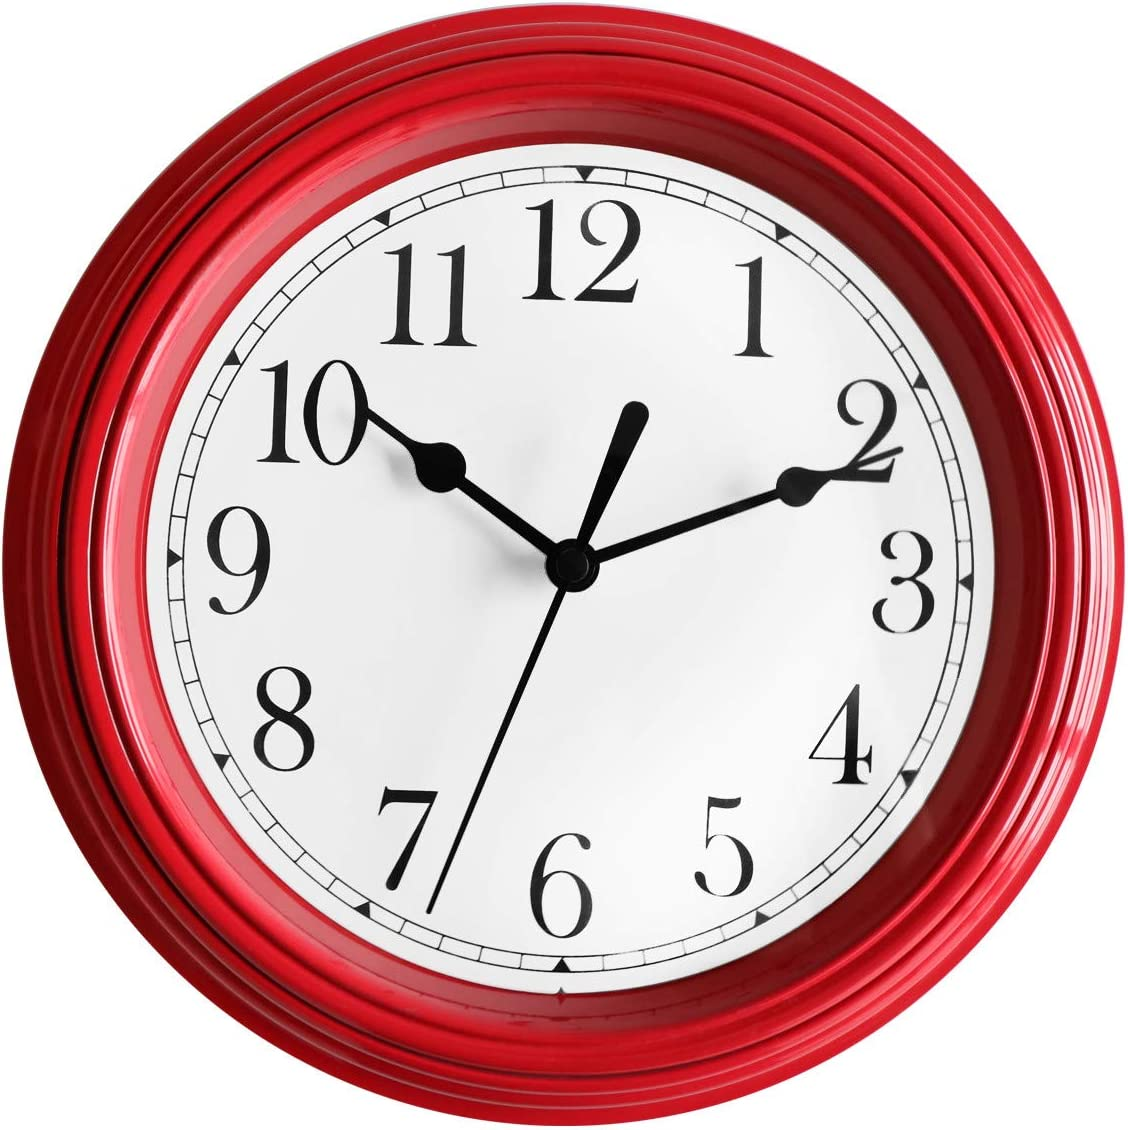 Foxtop Red Wall Clock 9 Inch Round Silent Non-Ticking Battery Operated Quality Quartz Quiet Easy to Read Clock for Kitchen